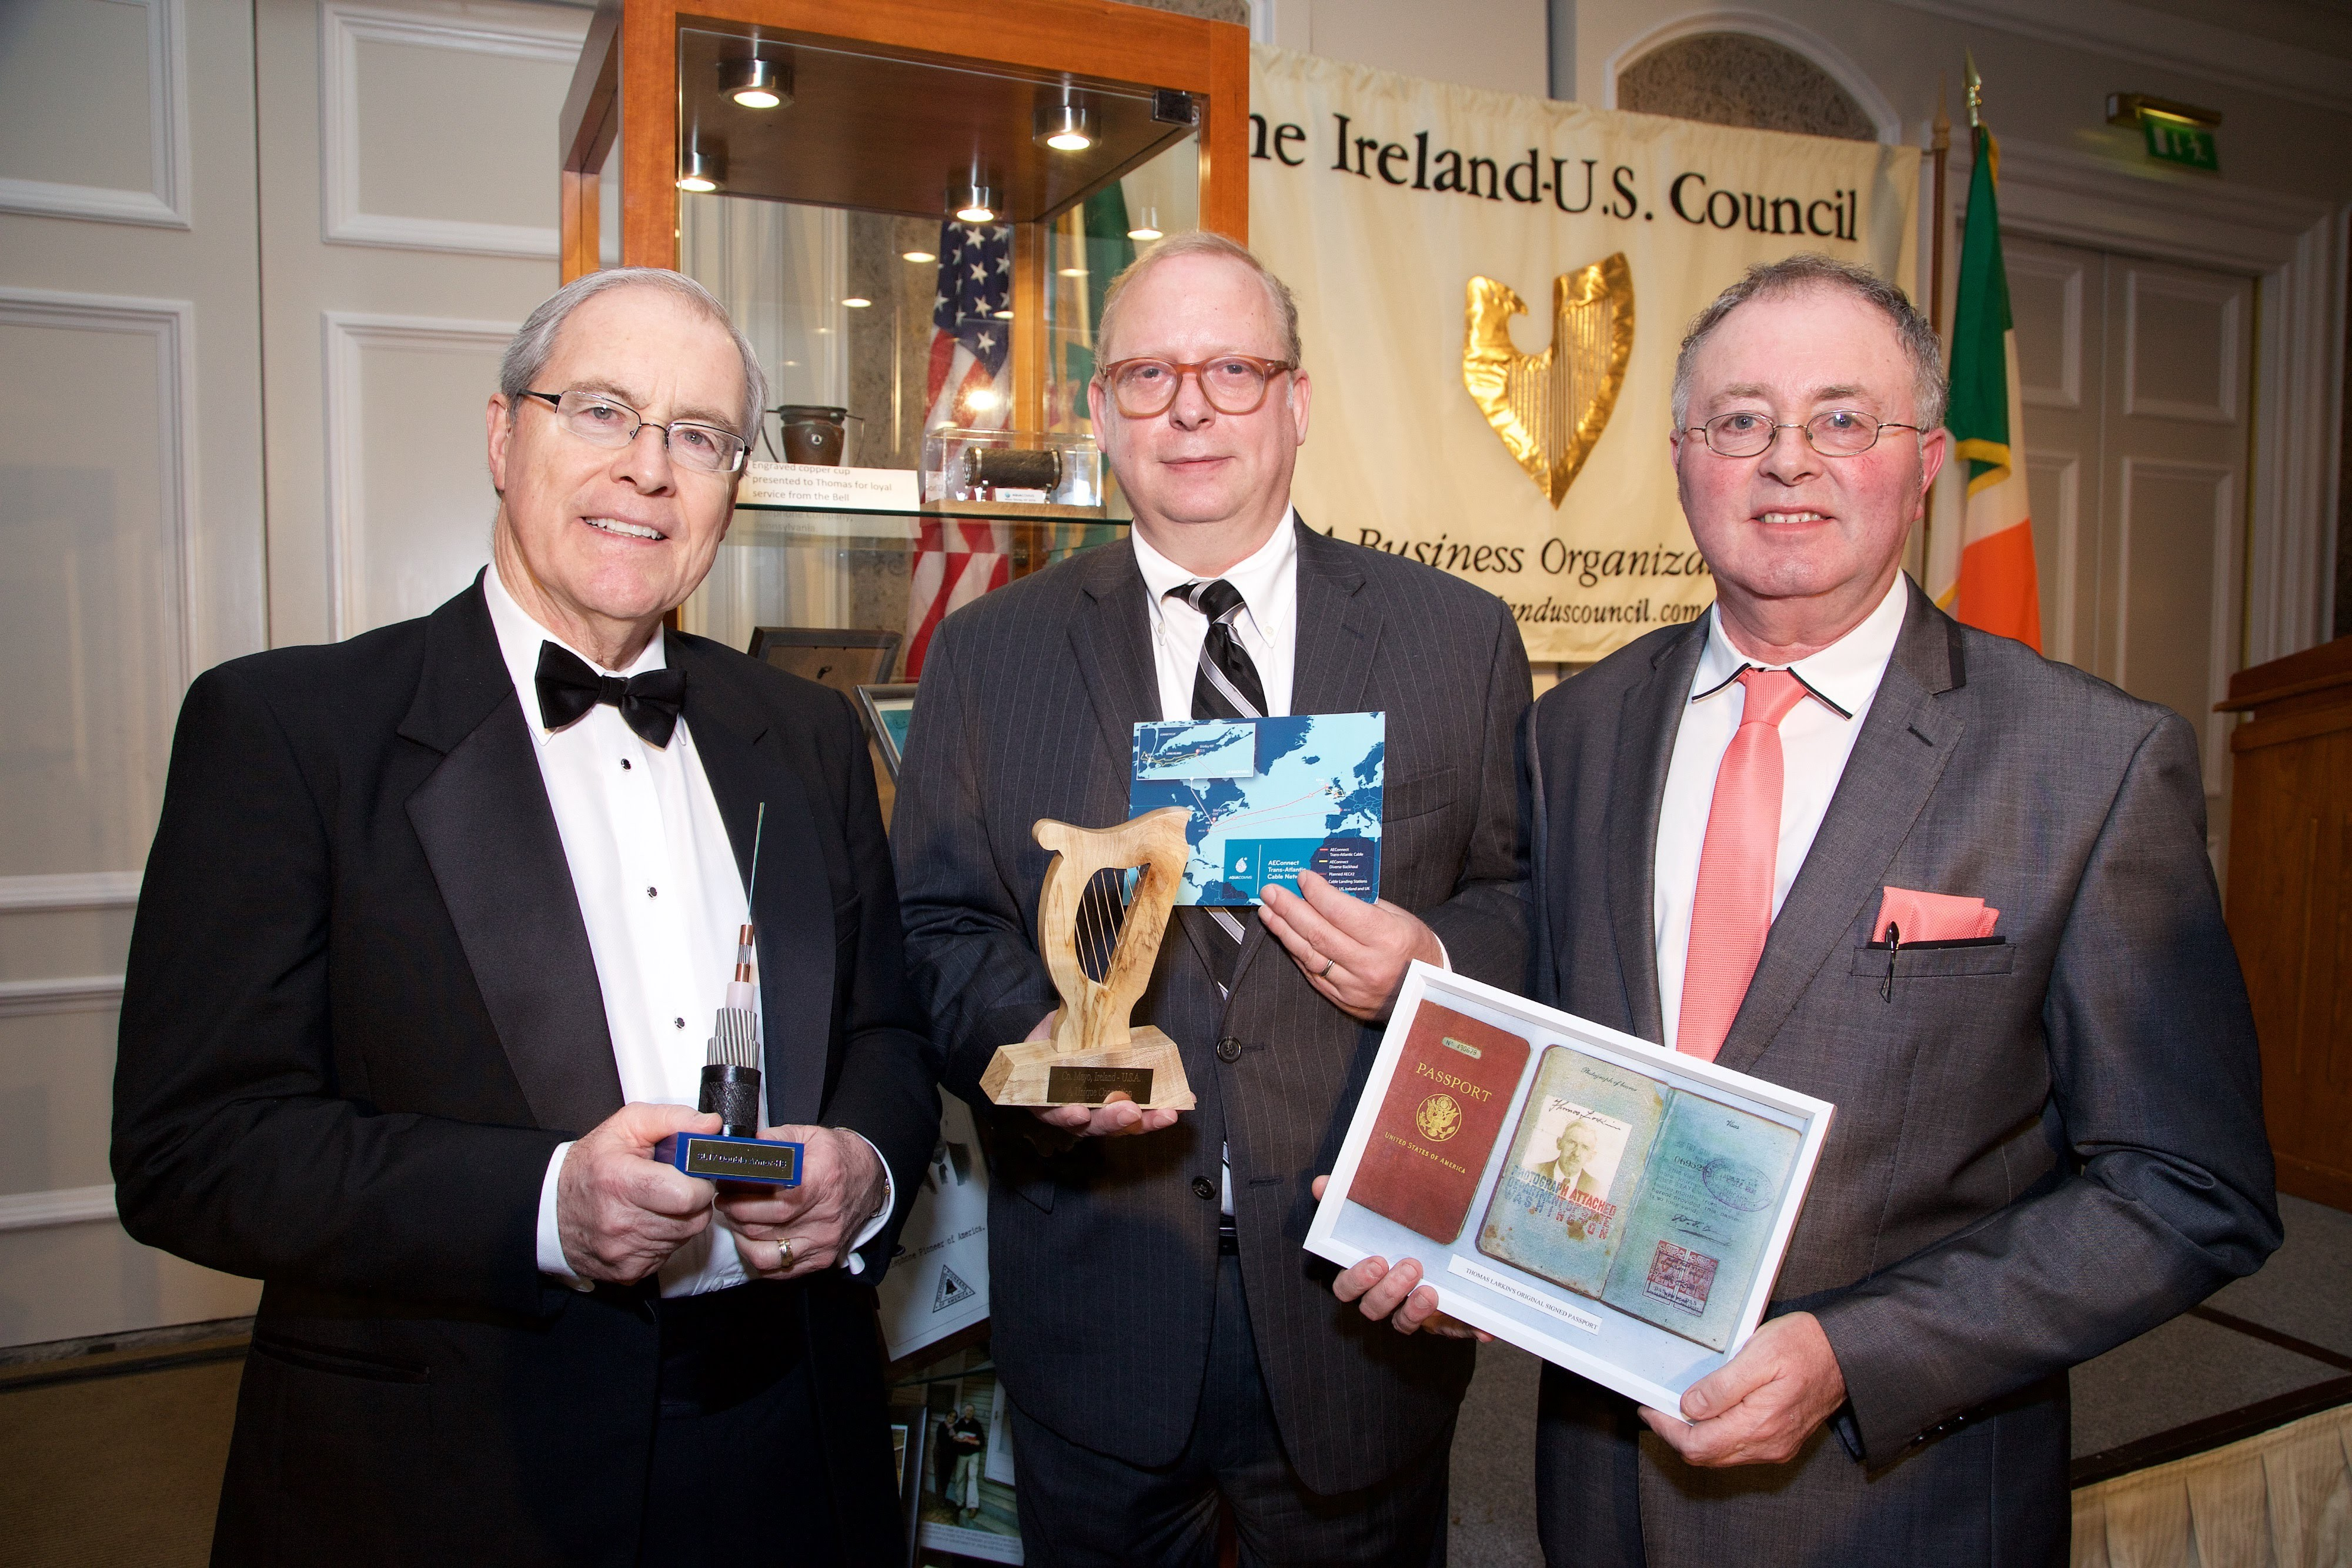 17/12/2015 17 December 2015 Pictured at The Ireland - U.S. Council Holiday Season Member - Guest Reception at the InterContinental Hotel, Dublin were (L-R): U.S. Ambassador, Kevin F. O'Malley; Greg Varisco, AquaComms and Michael Larkin.